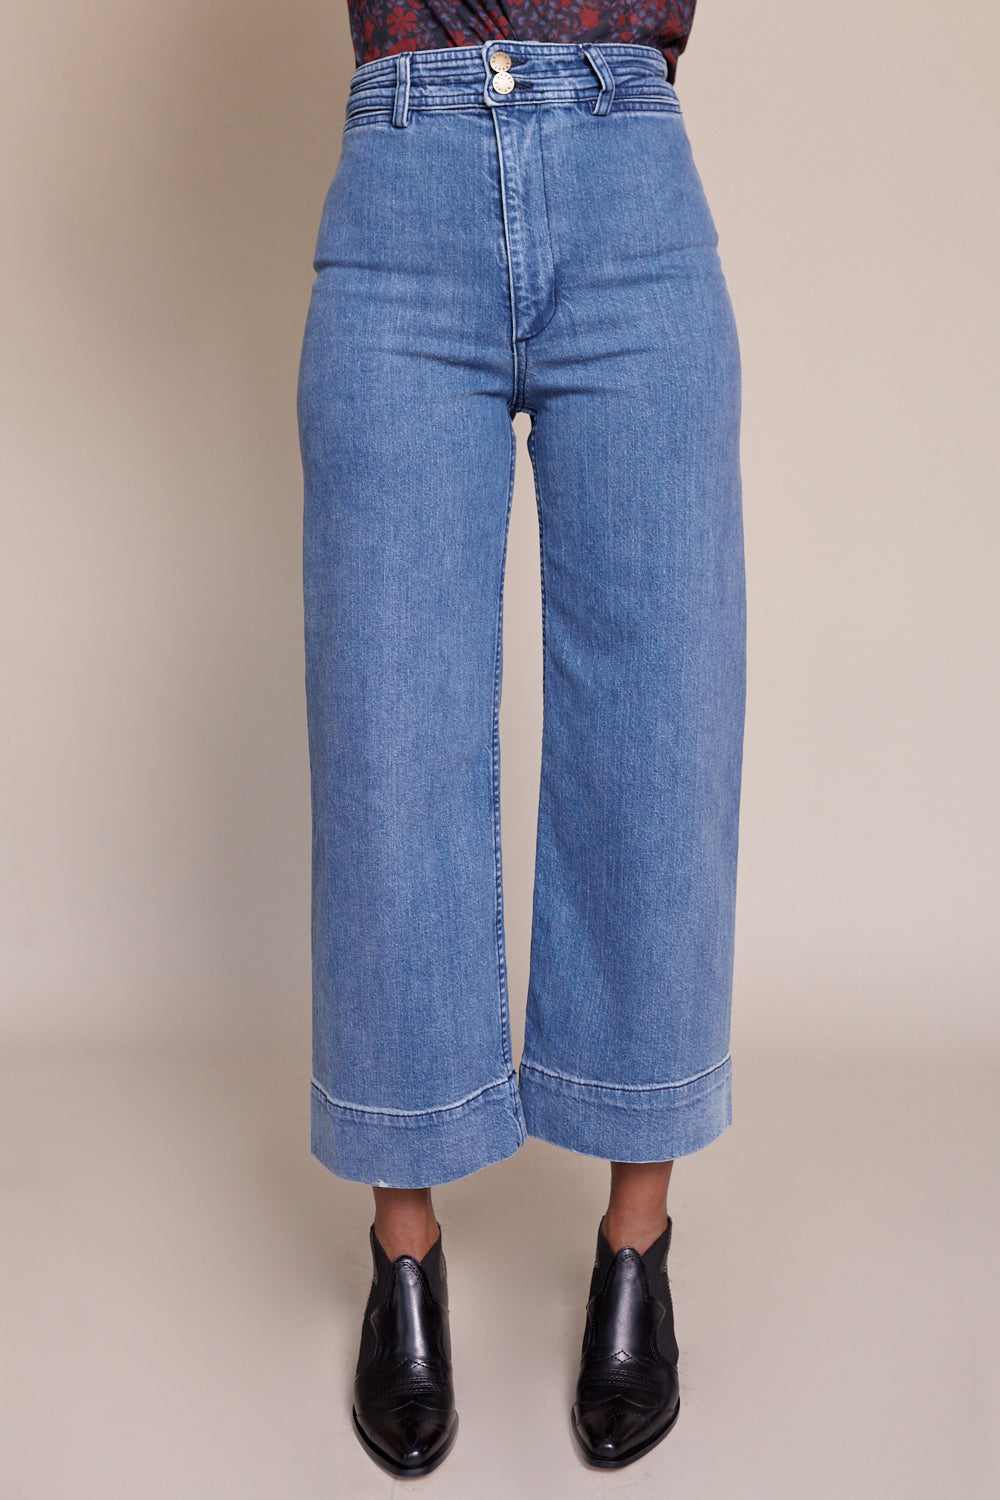 Merida Denim Pant in Classic Stonewash